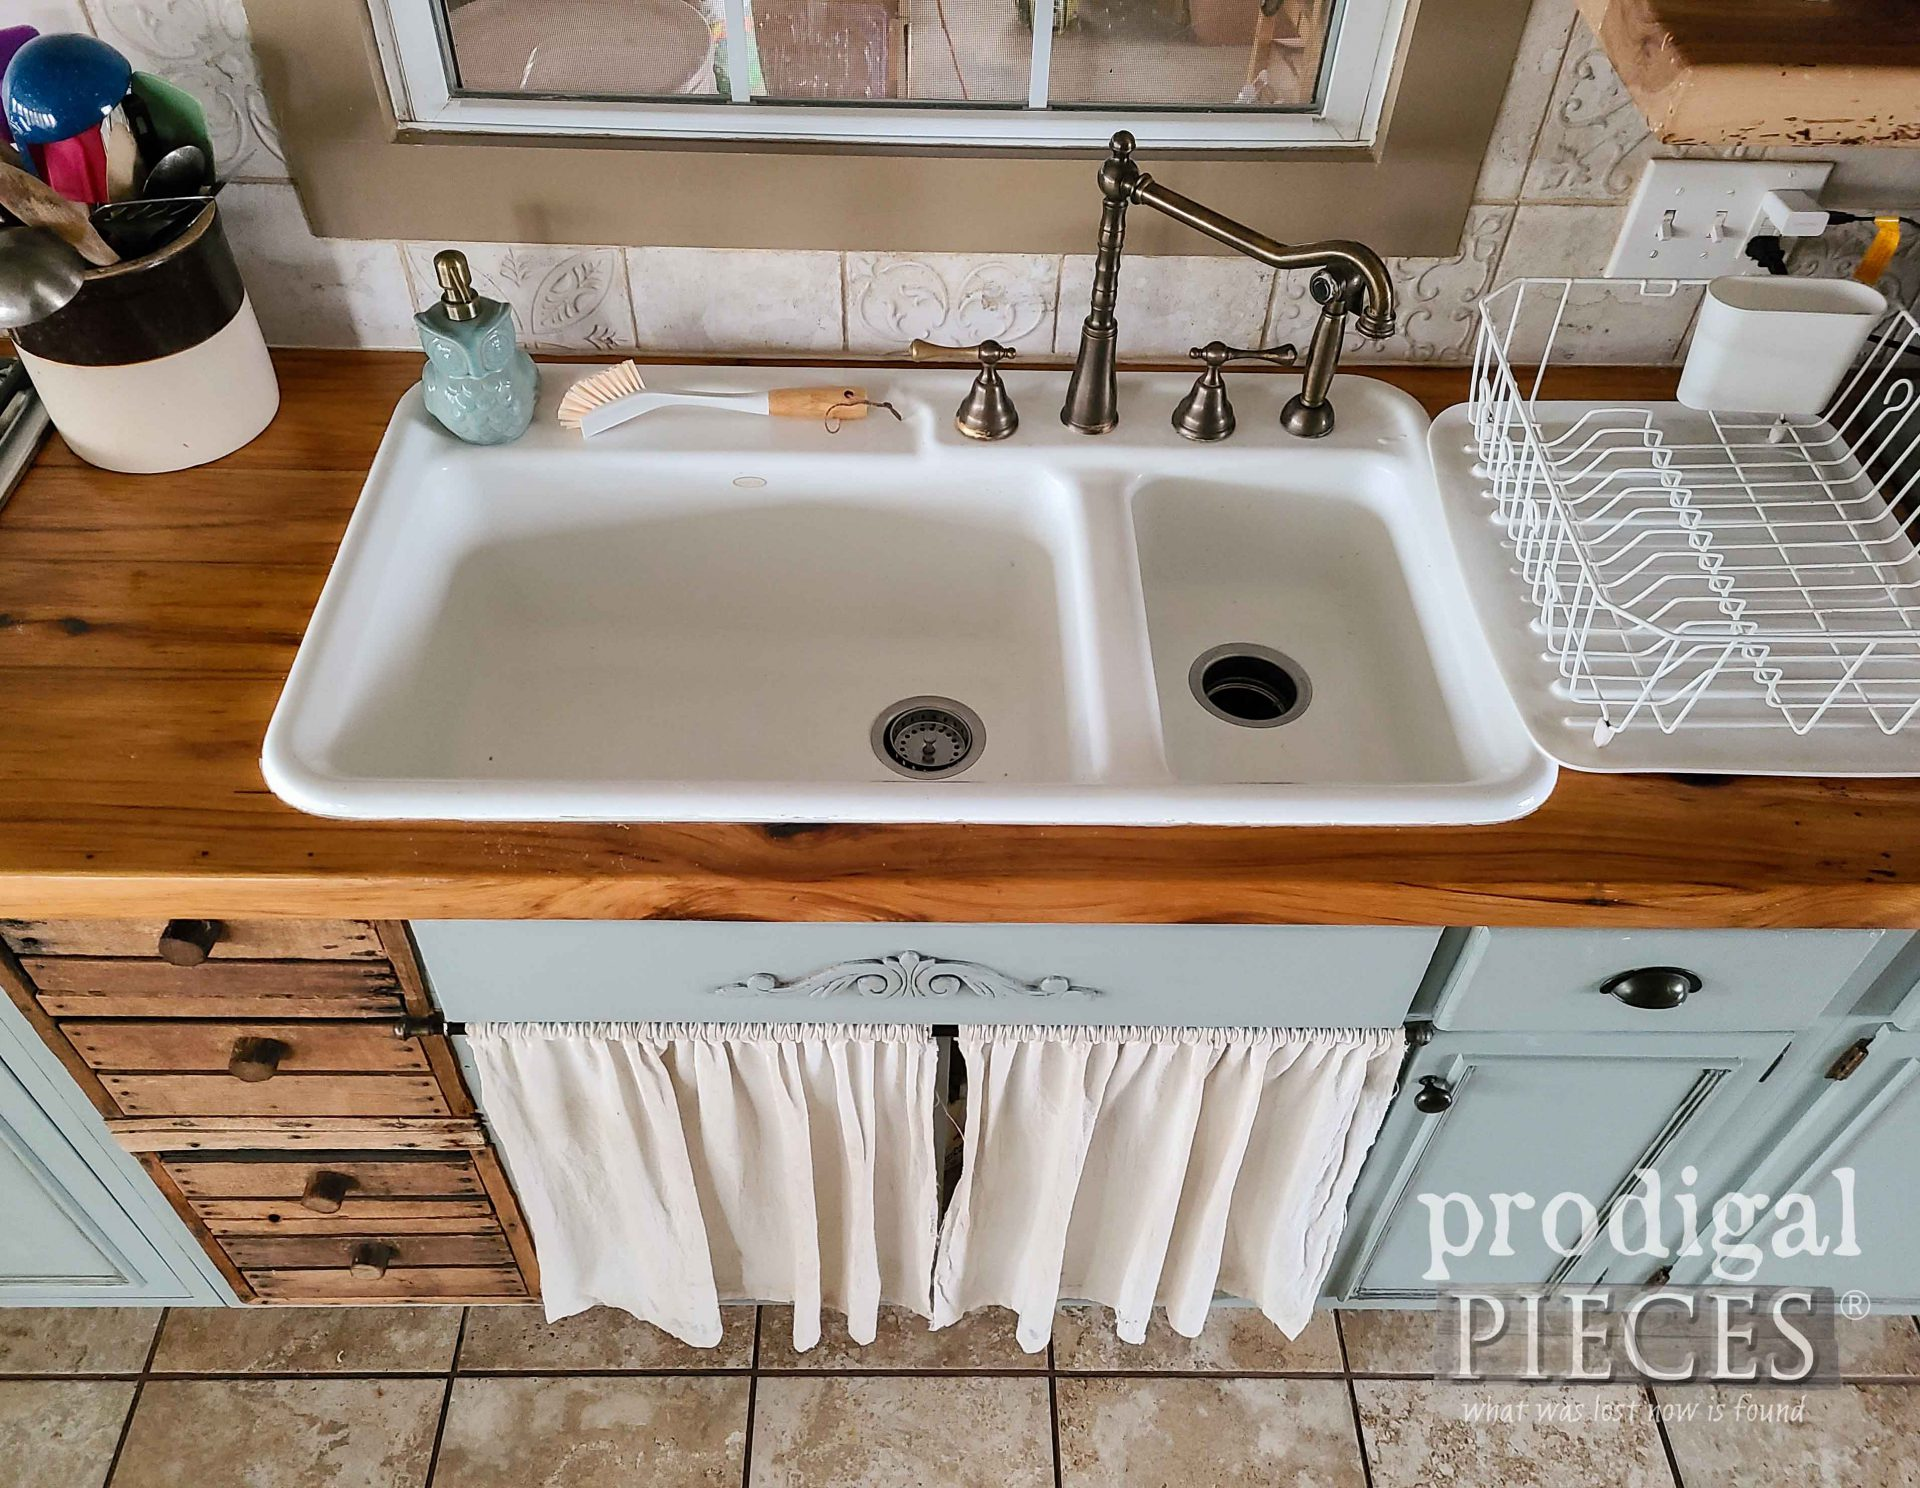 Cast Iron Farmhouse Sink in Prodigal Pieces Kitchen | prodigalpieces.com #prodigalpieces #farmhouse #kitchen #sink